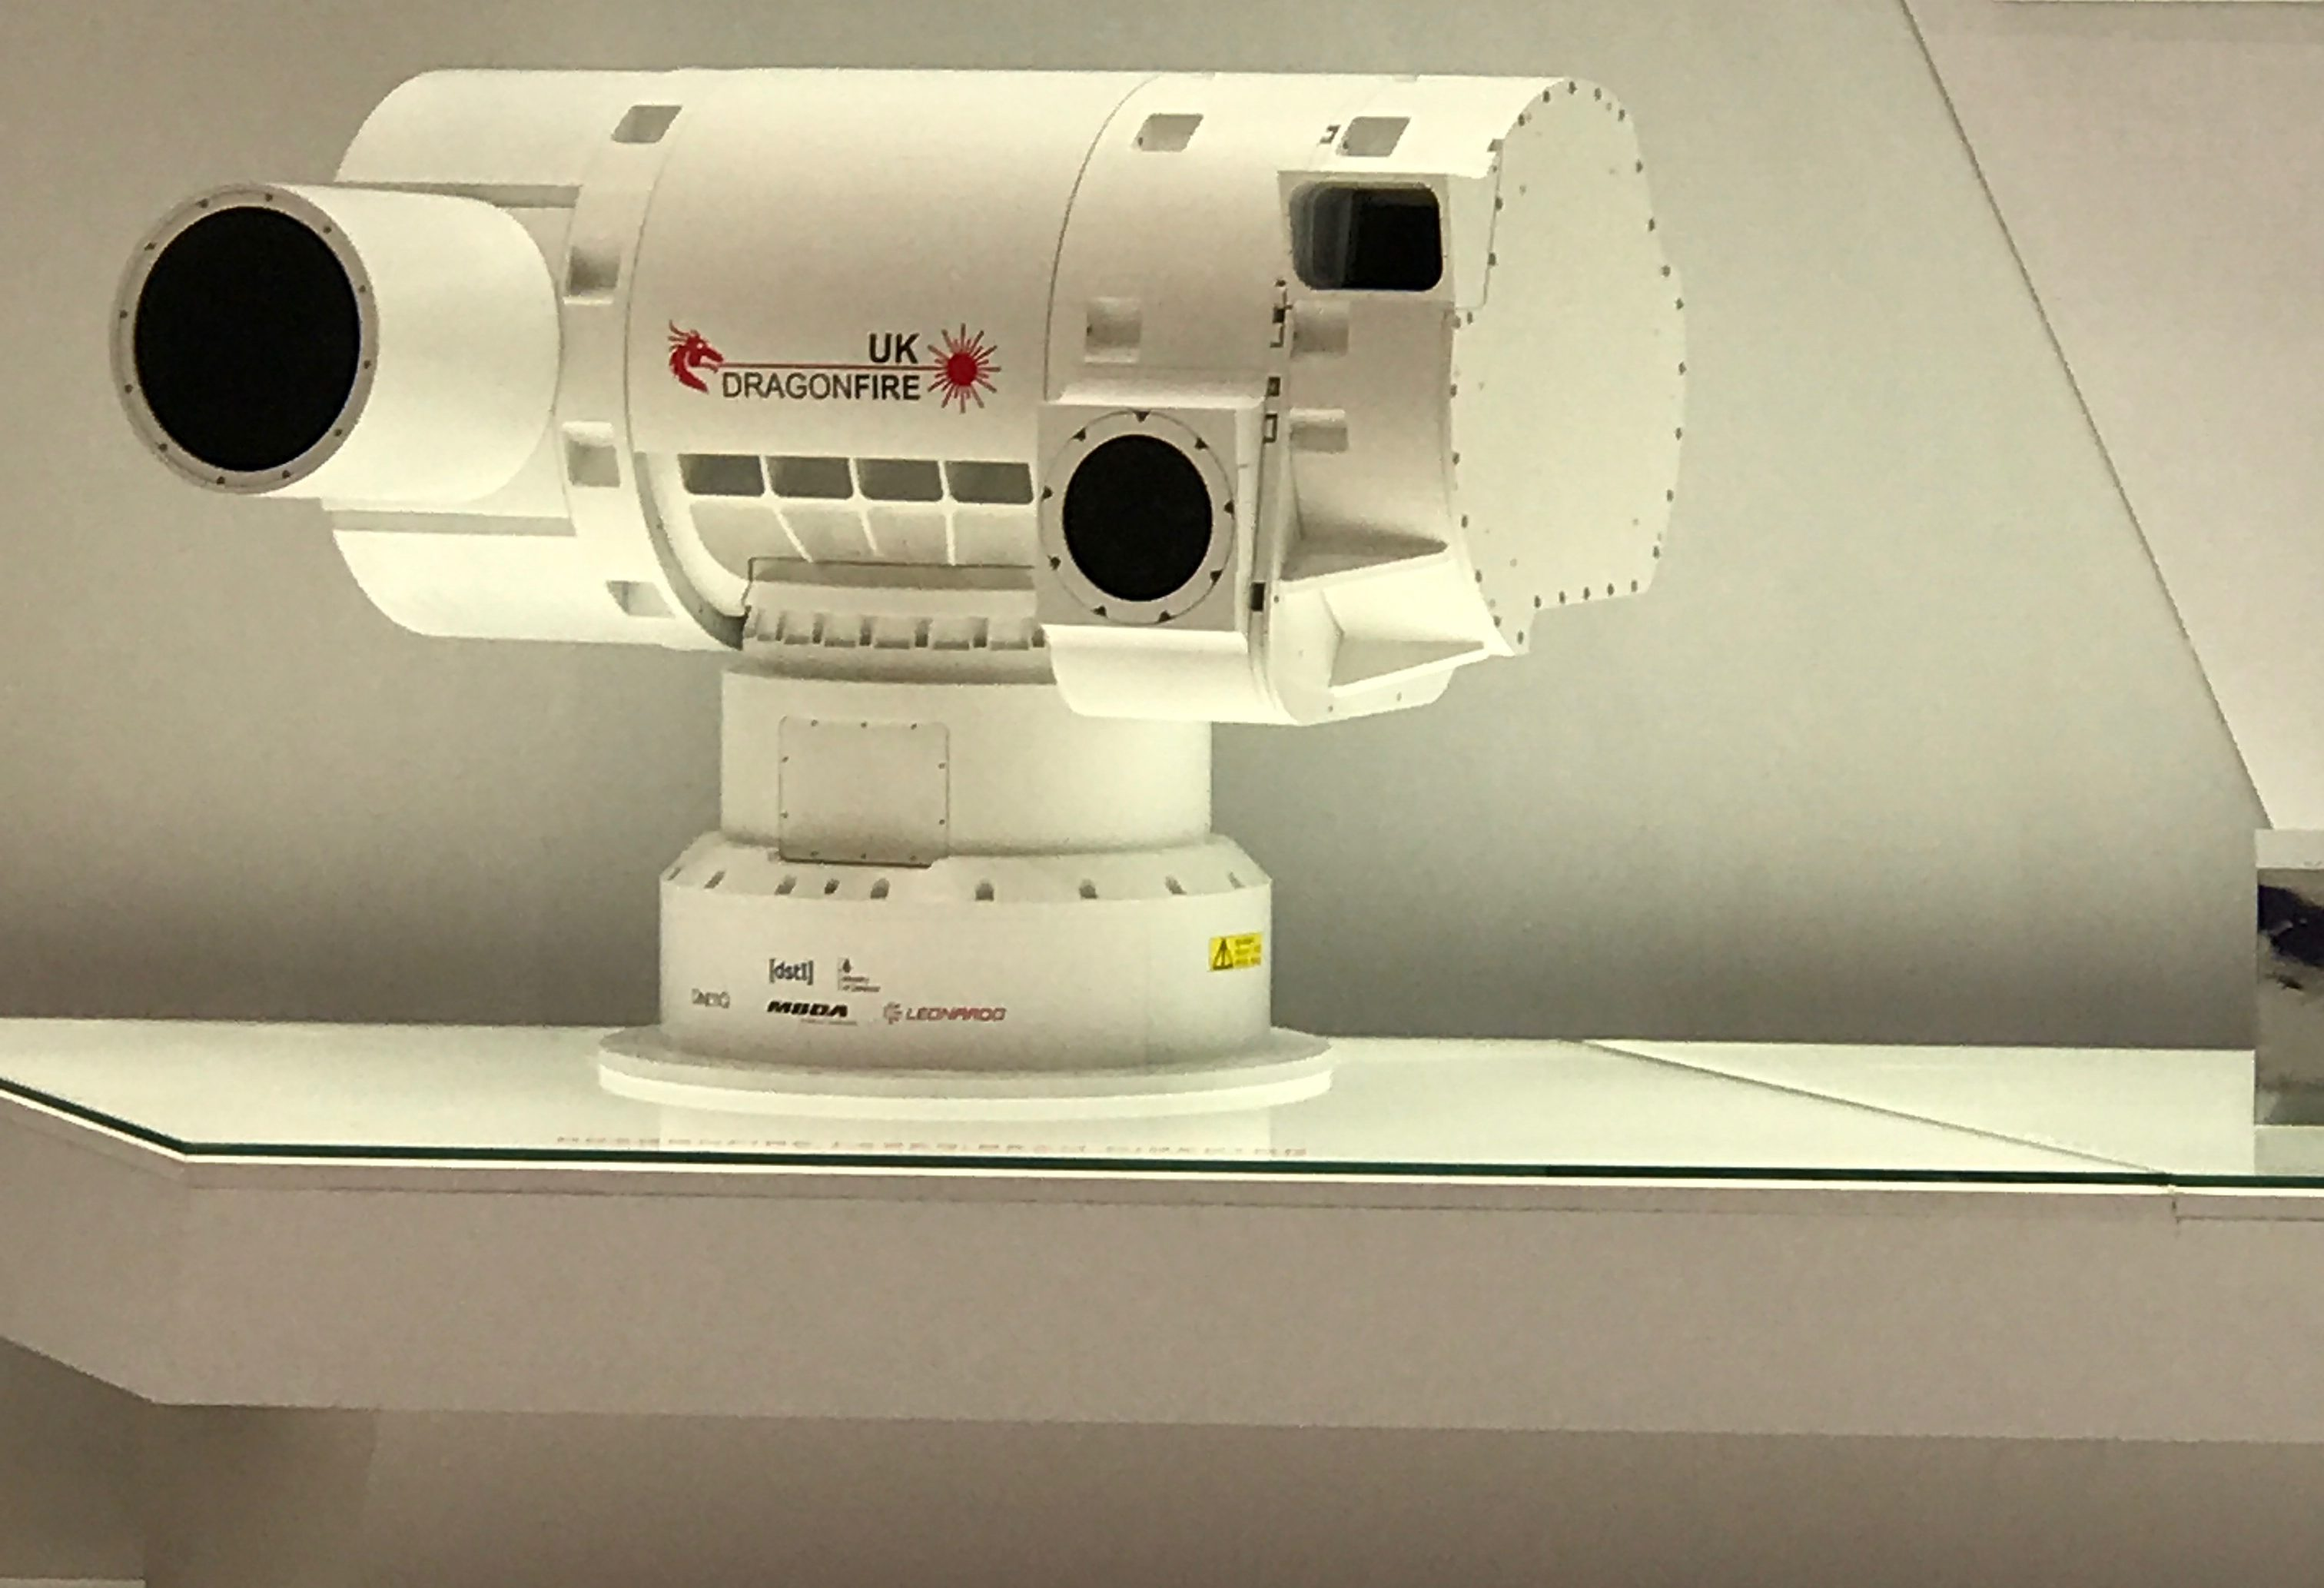 SEARCH TEAM FINDS LASER WEAPON SYSTEM AT ARMS FAIR post image